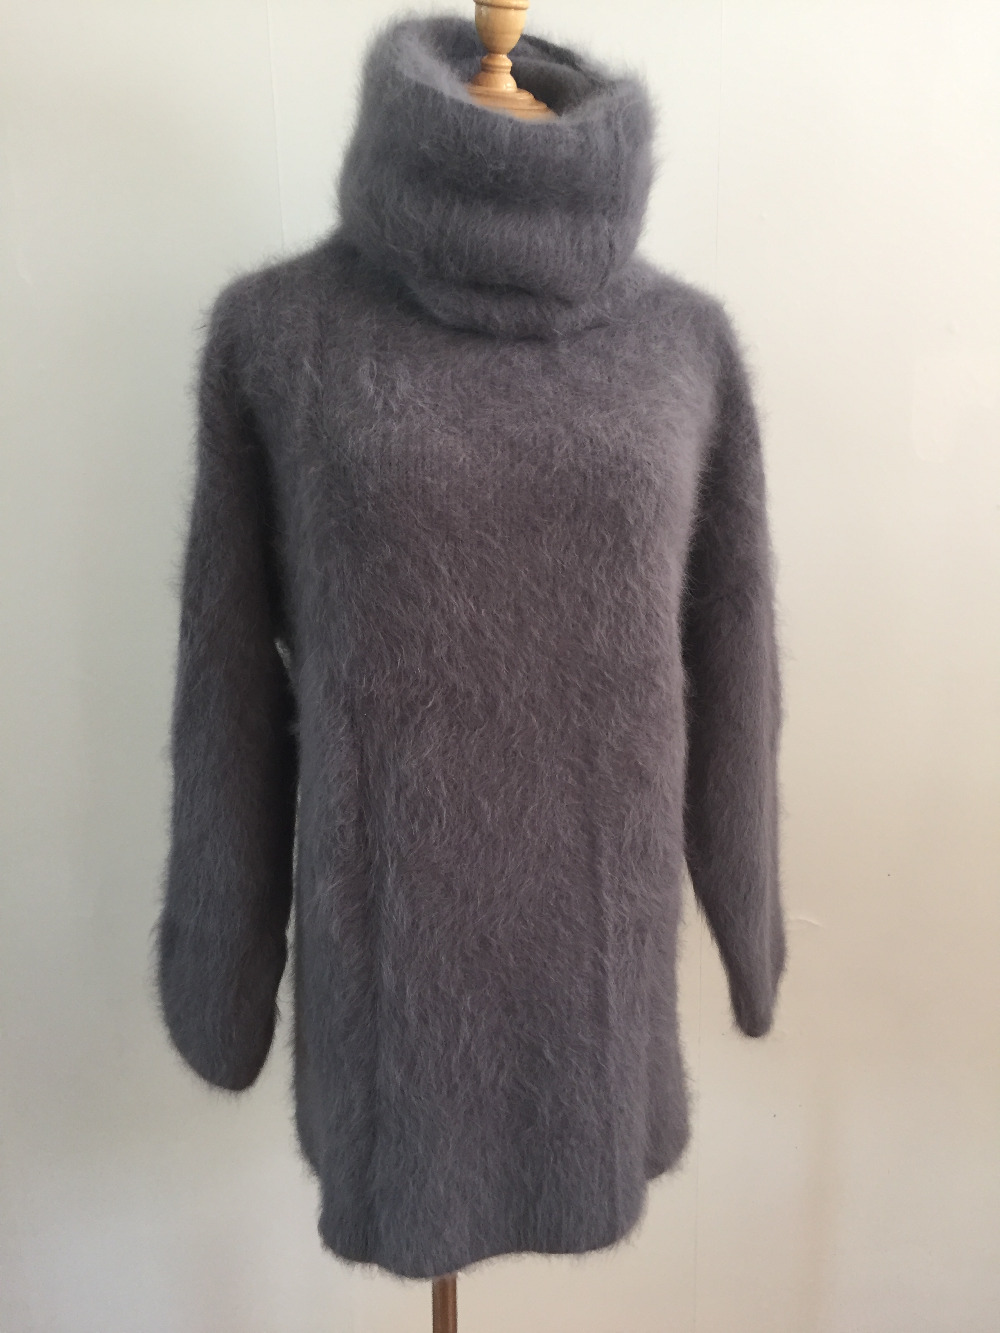 50cm high collar, mink cashmere sweater, a wholesale, customized, wholesale customers contact customer service free delivery